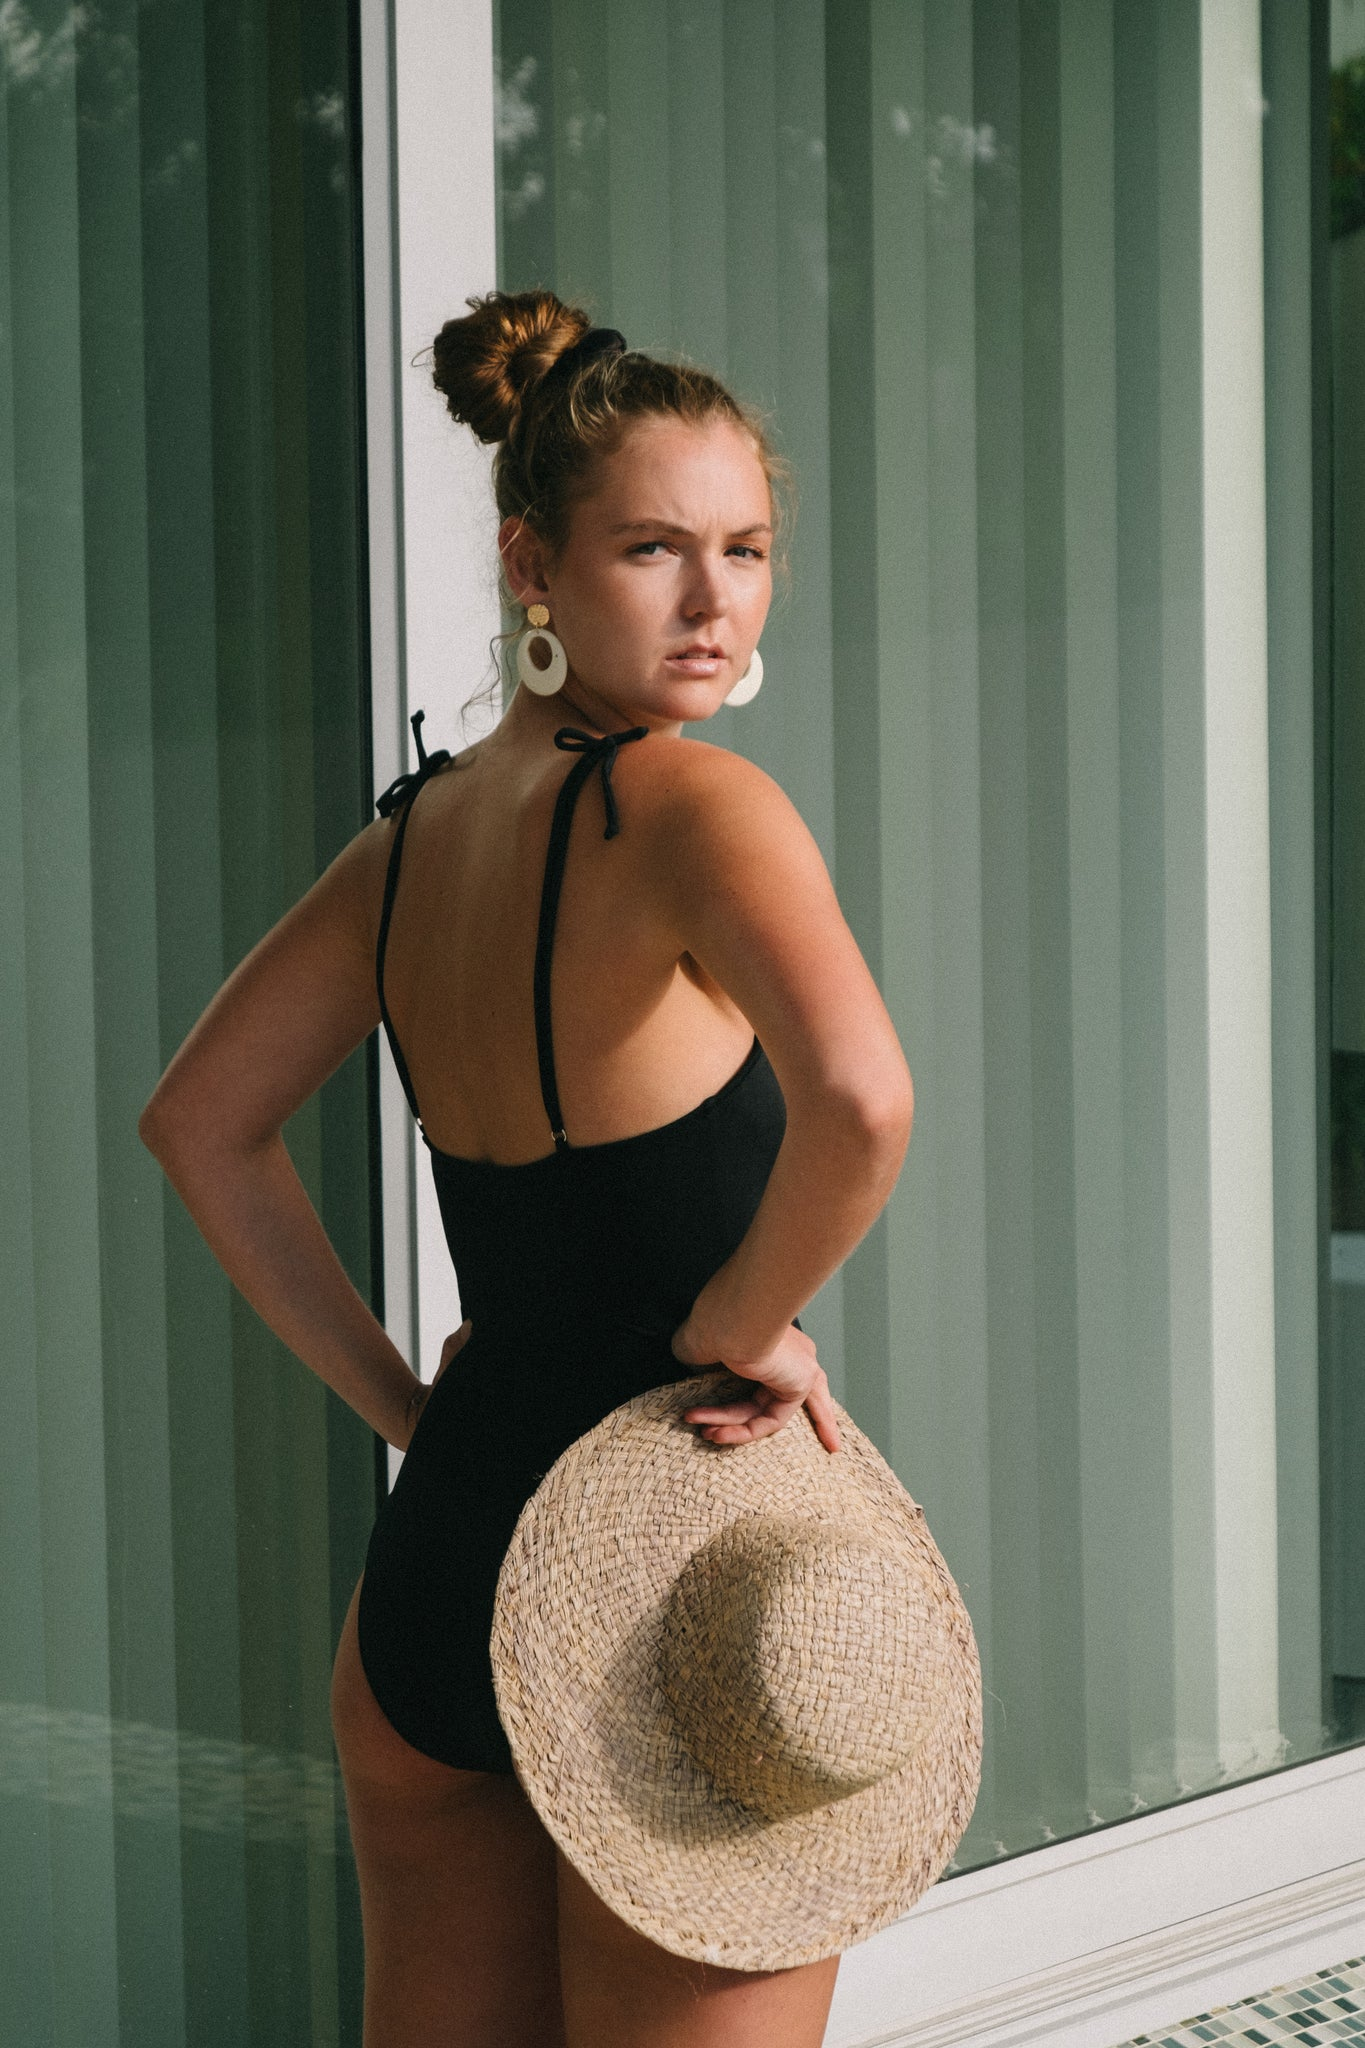 Nigella swimsuit in Noir (black)